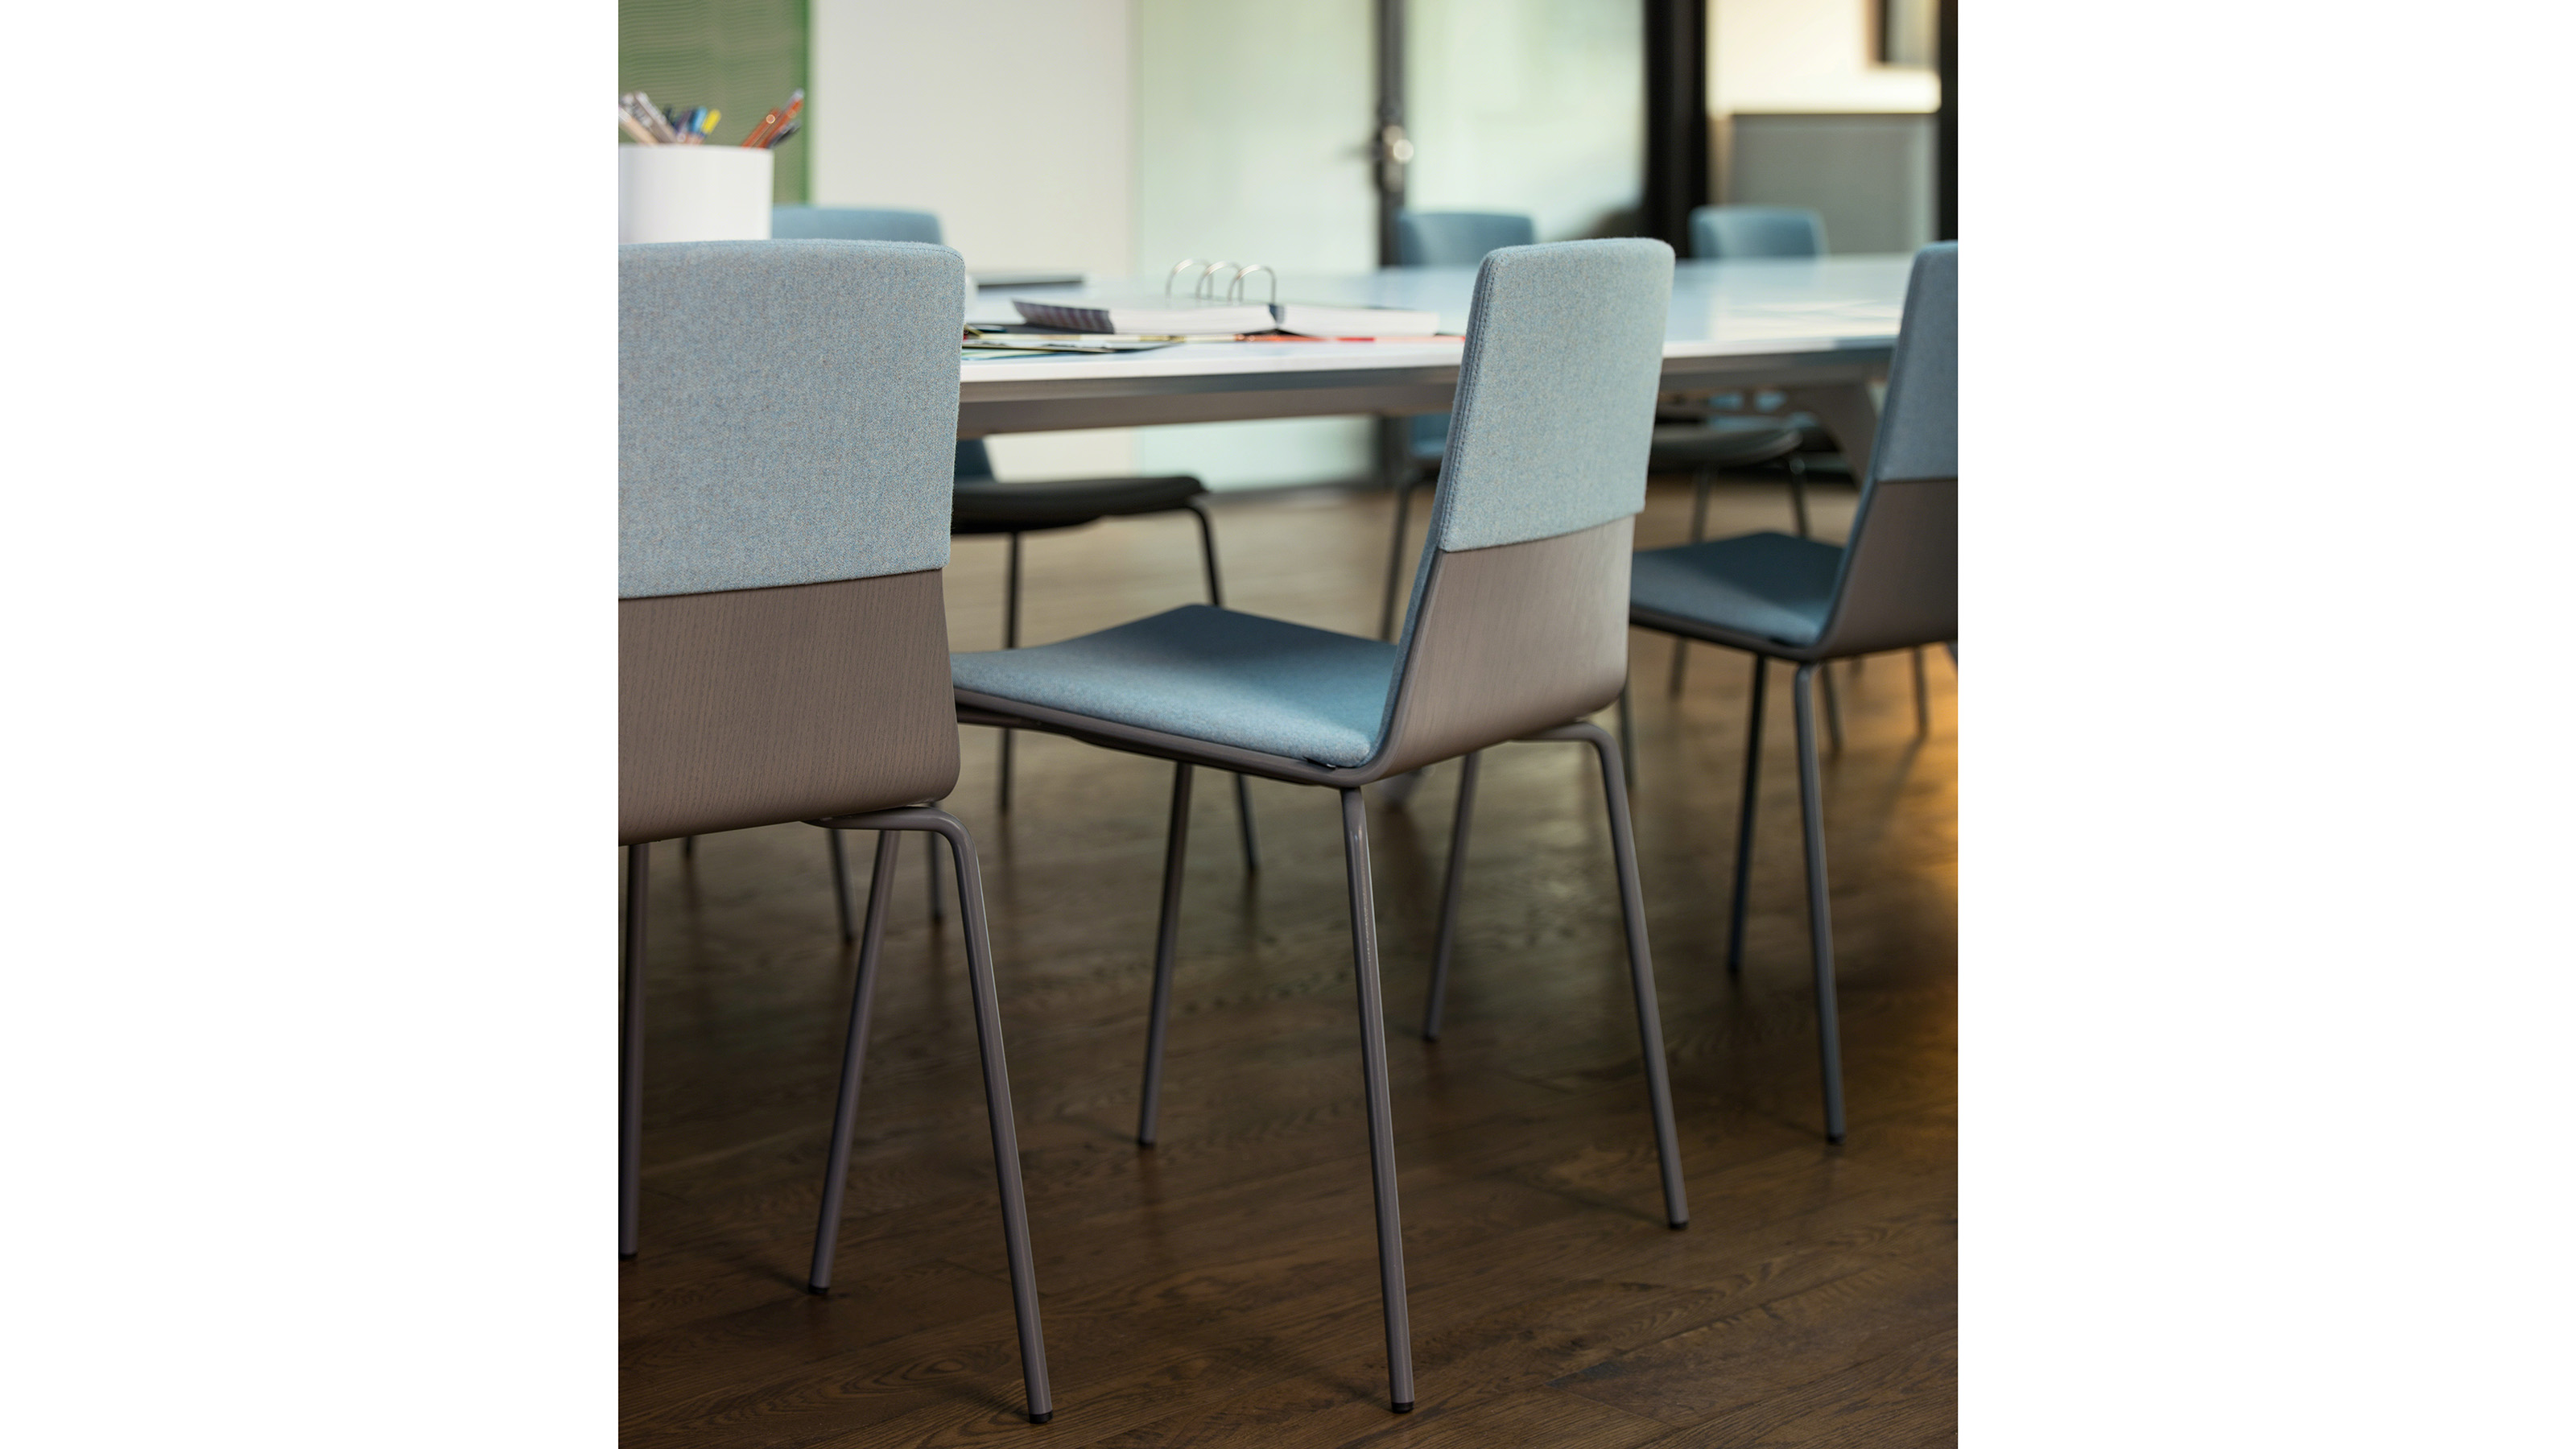 sc 1 st  Steelcase & Stackable Montara650 Seating by Coalesse | Steelcase islam-shia.org